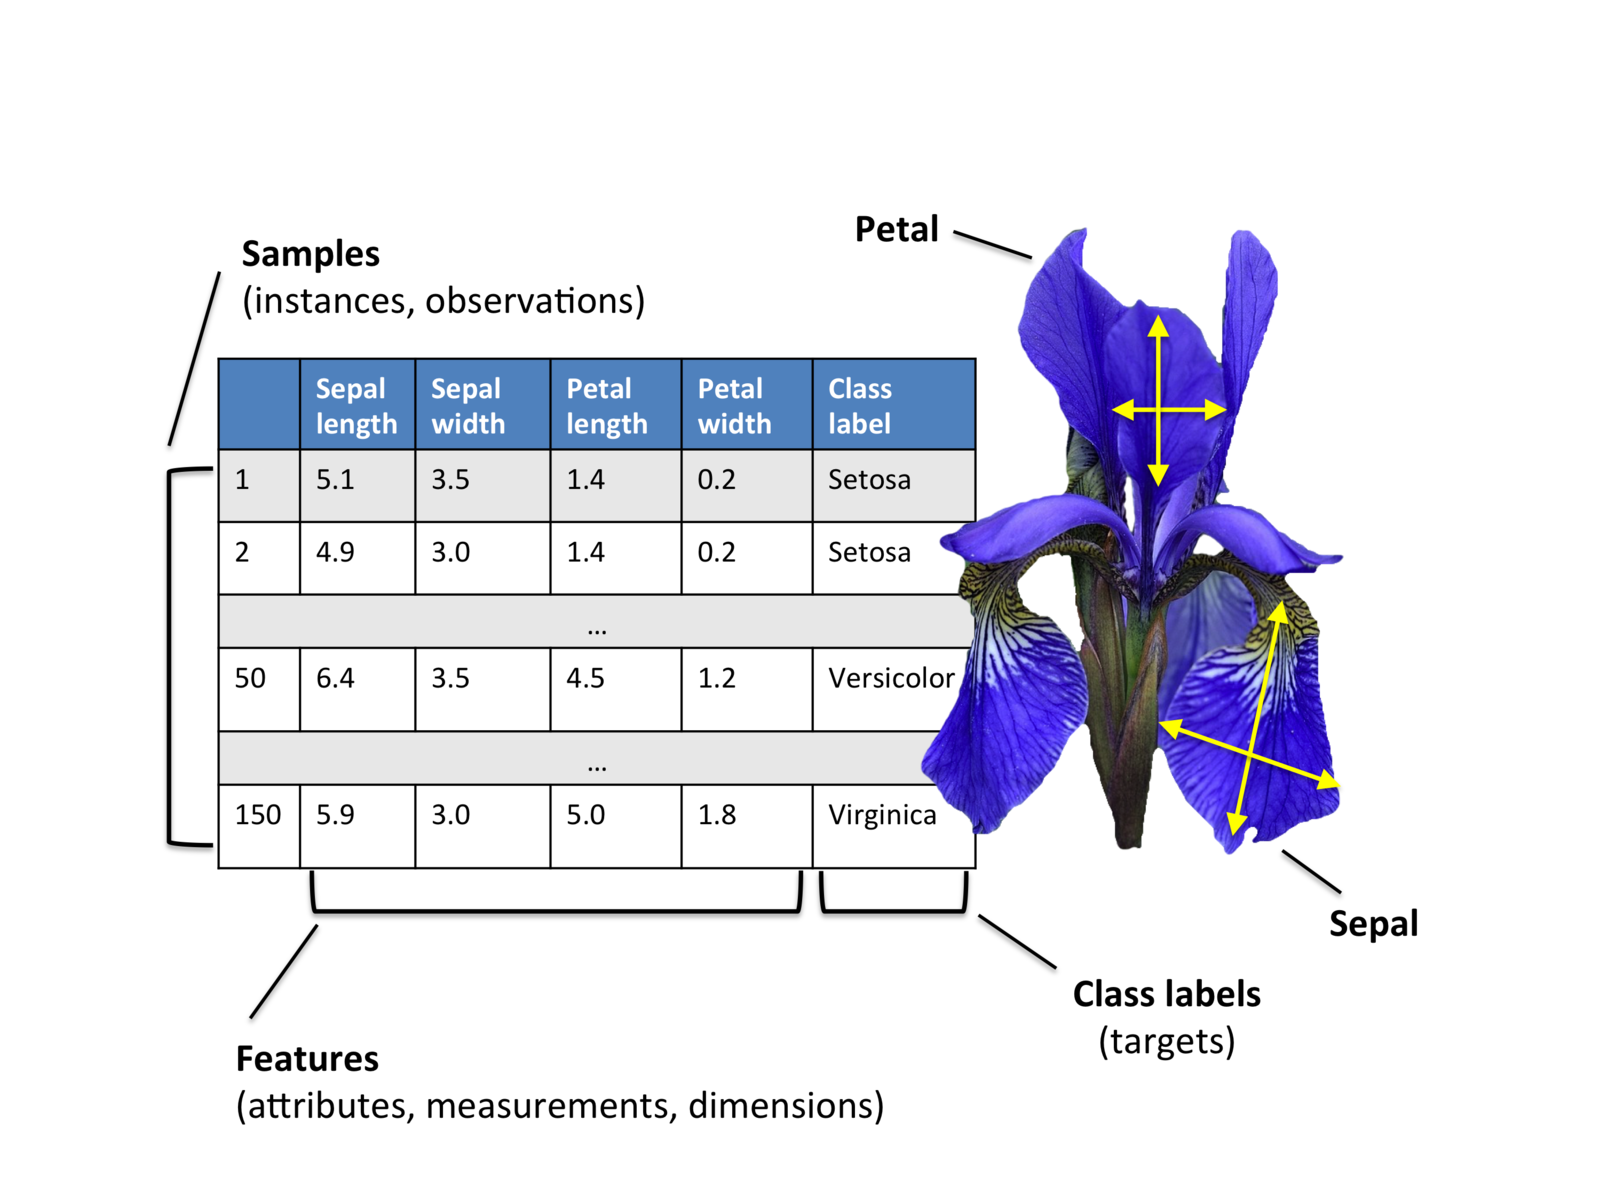 Applied Machine Learning using R - Classification with IRIS